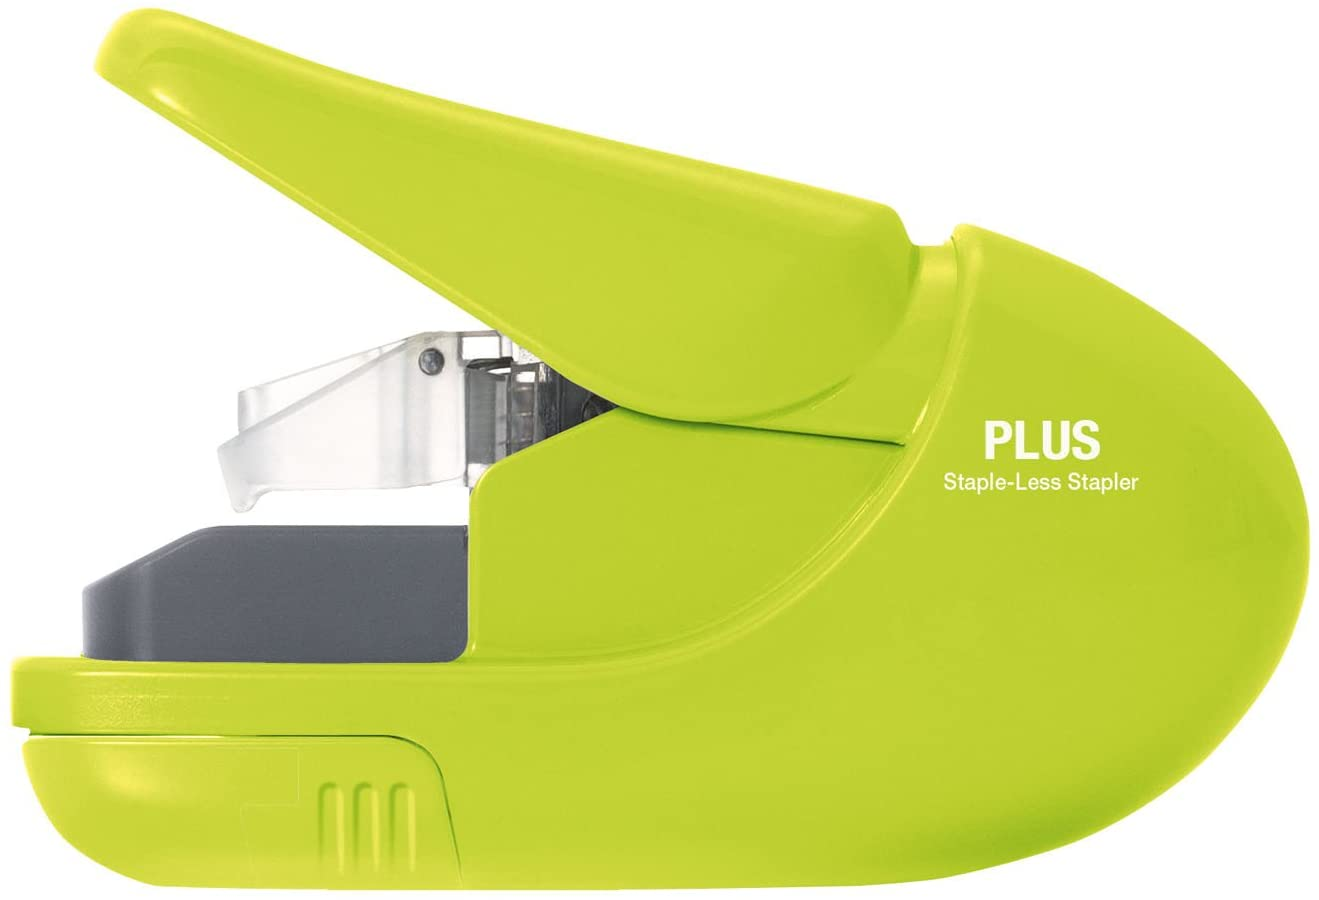 Plus Free shipping PAPER CLINCH Compact quality assurance Green Heavy S Duty Light Free Staple